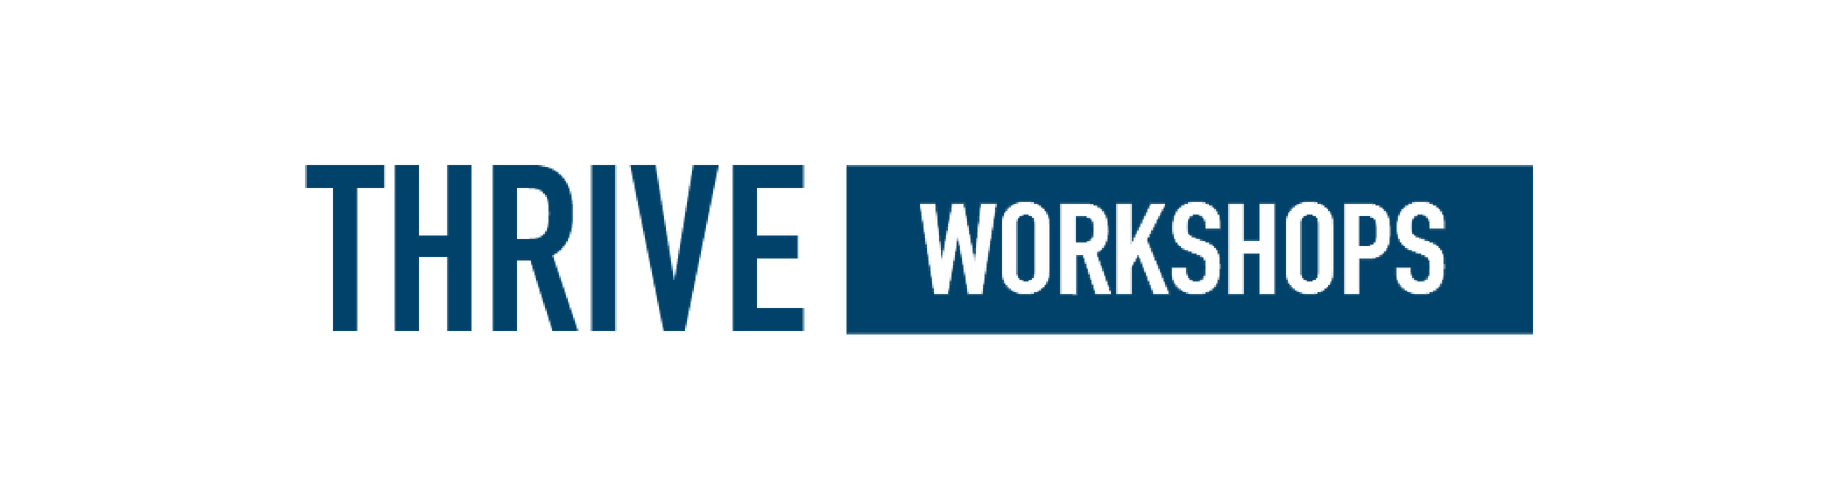 THRIVE-workshops_icon.png